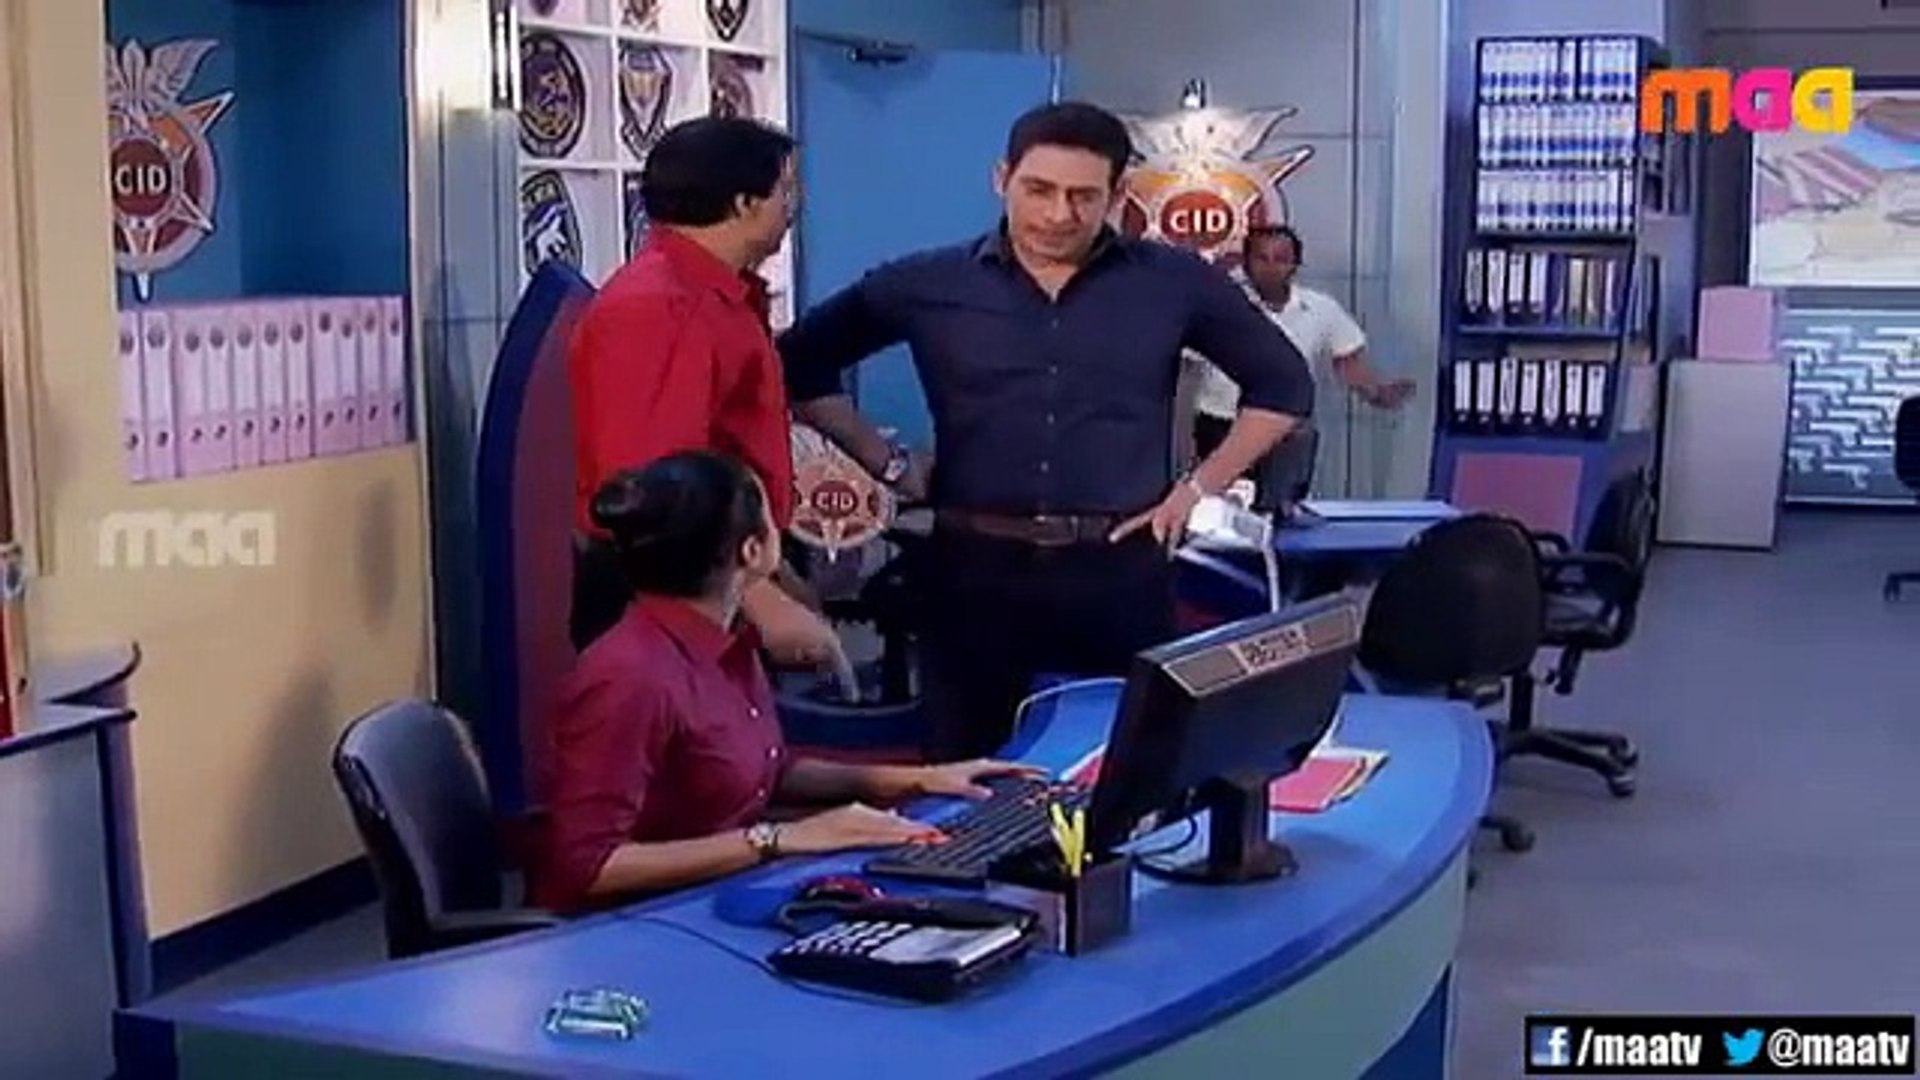 Cid episode 1032 free download